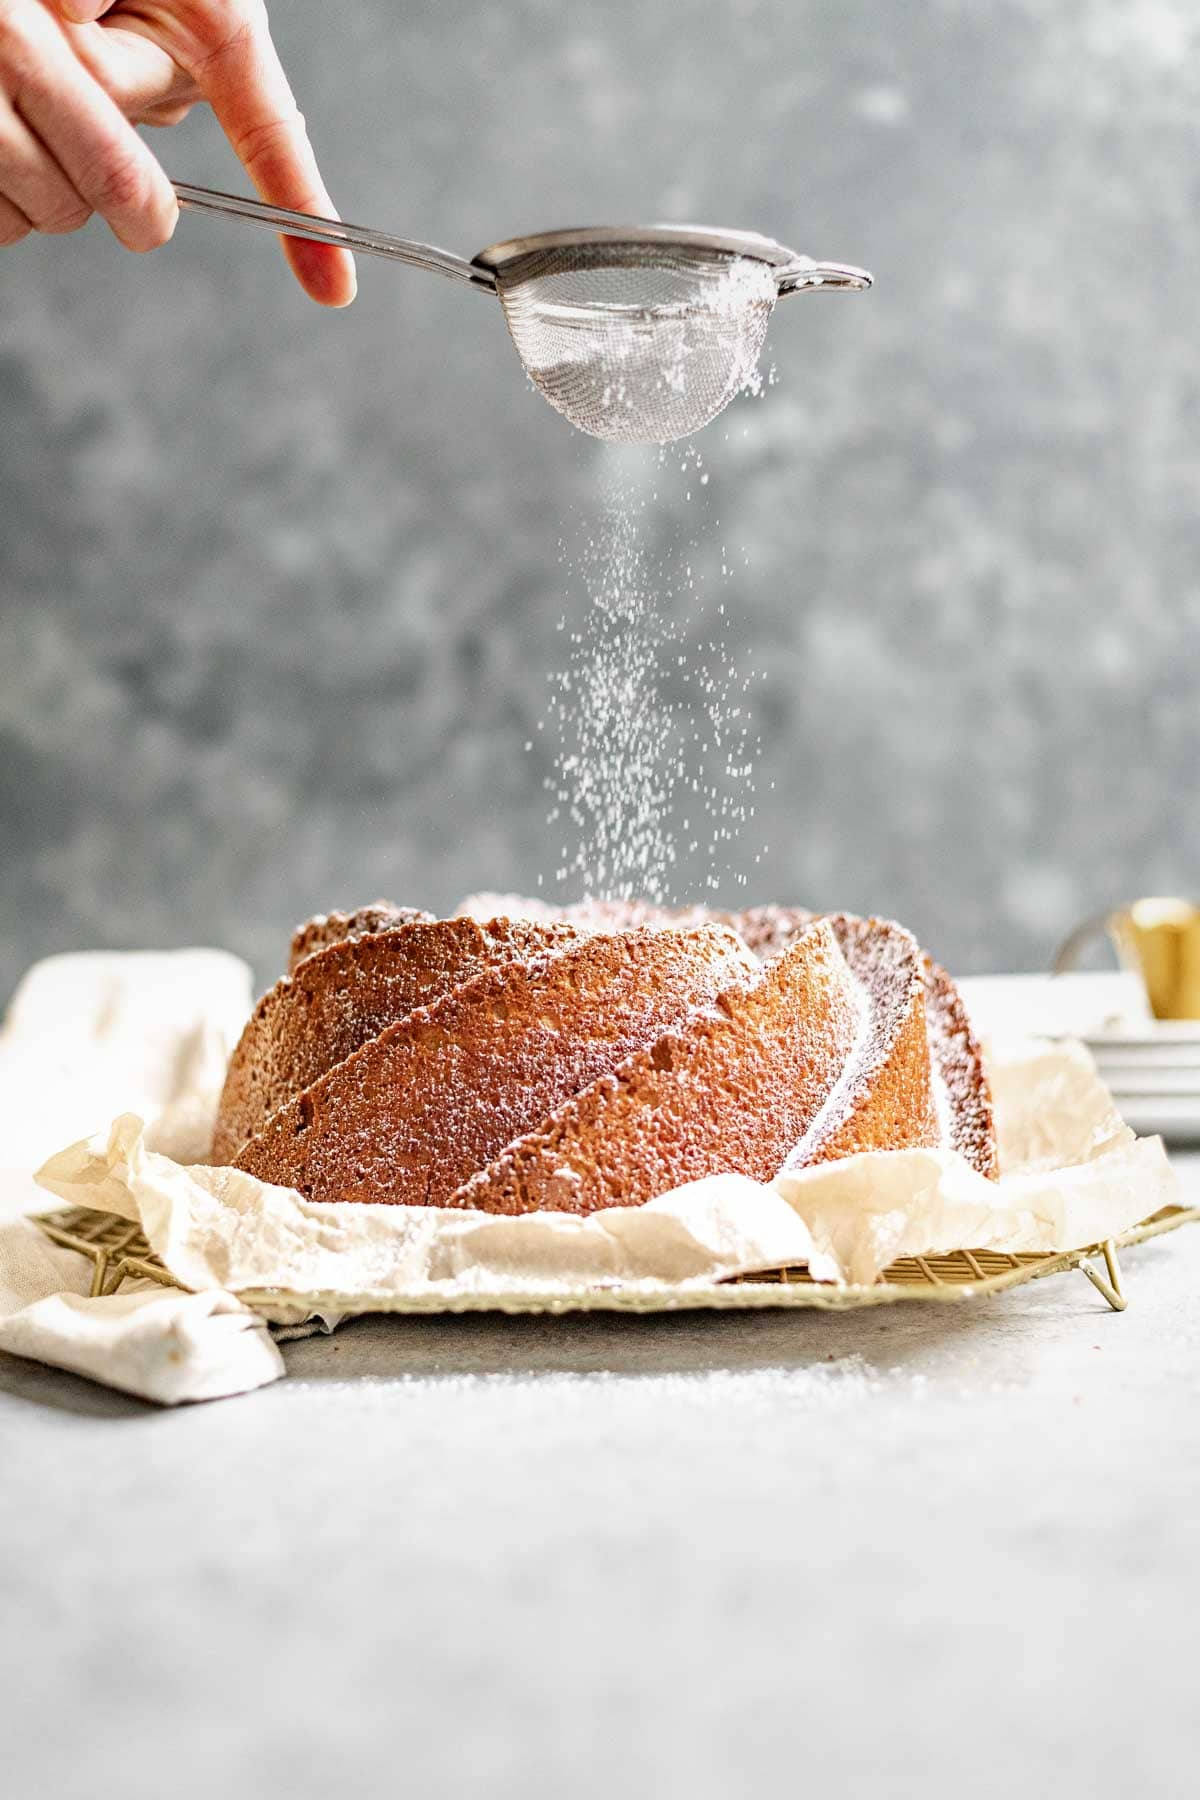 Almond Bundt Cake dusted with powdered sugar on parchment